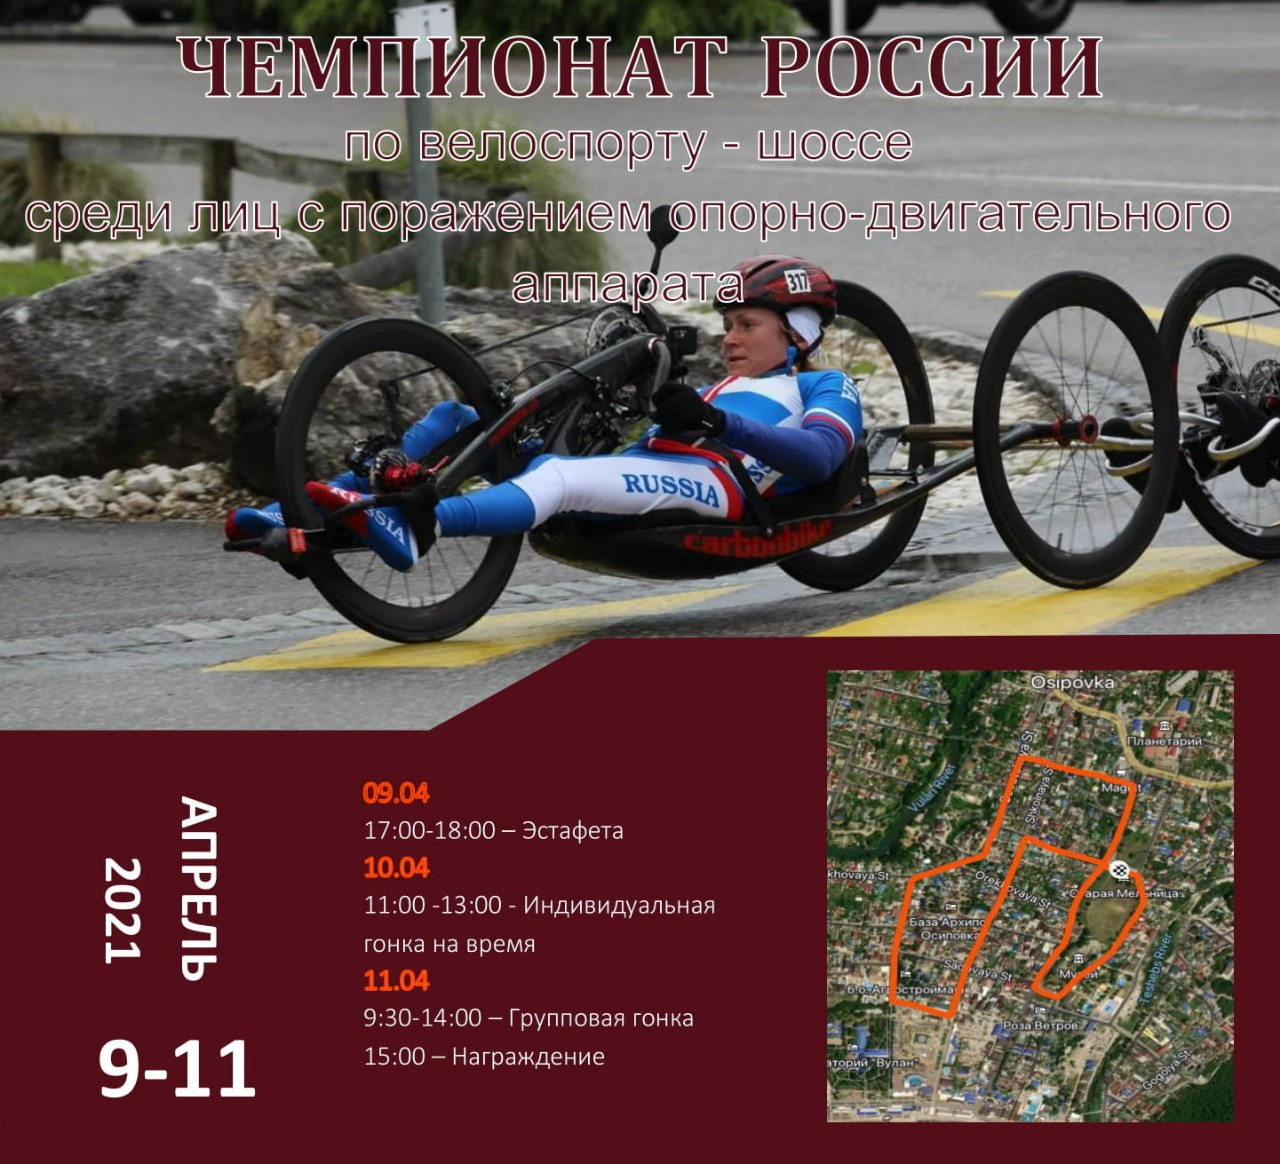 THE RUSSIAN PARA CYCLING CHAMPIONSHIP AMONG PI ATHLETES WILL BE HELD IN KRASNODAR TERRITORY